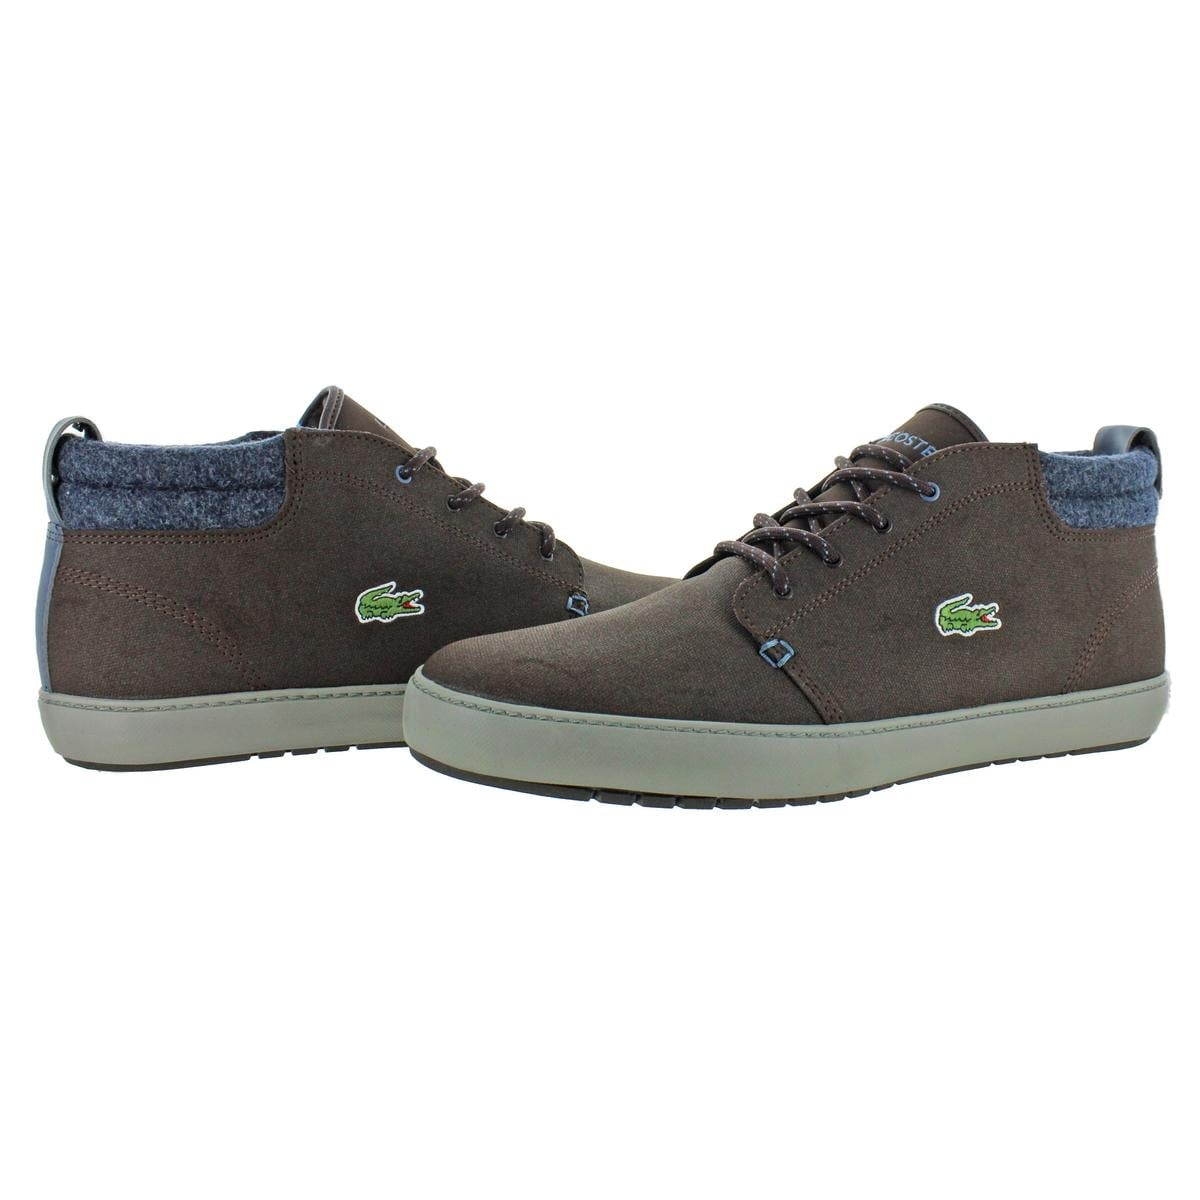 7b462b92d Shop Lacoste Mens AMpthill Terra 417 Chukka Leather Ortholite - Free  Shipping Today - Overstock - 28086610